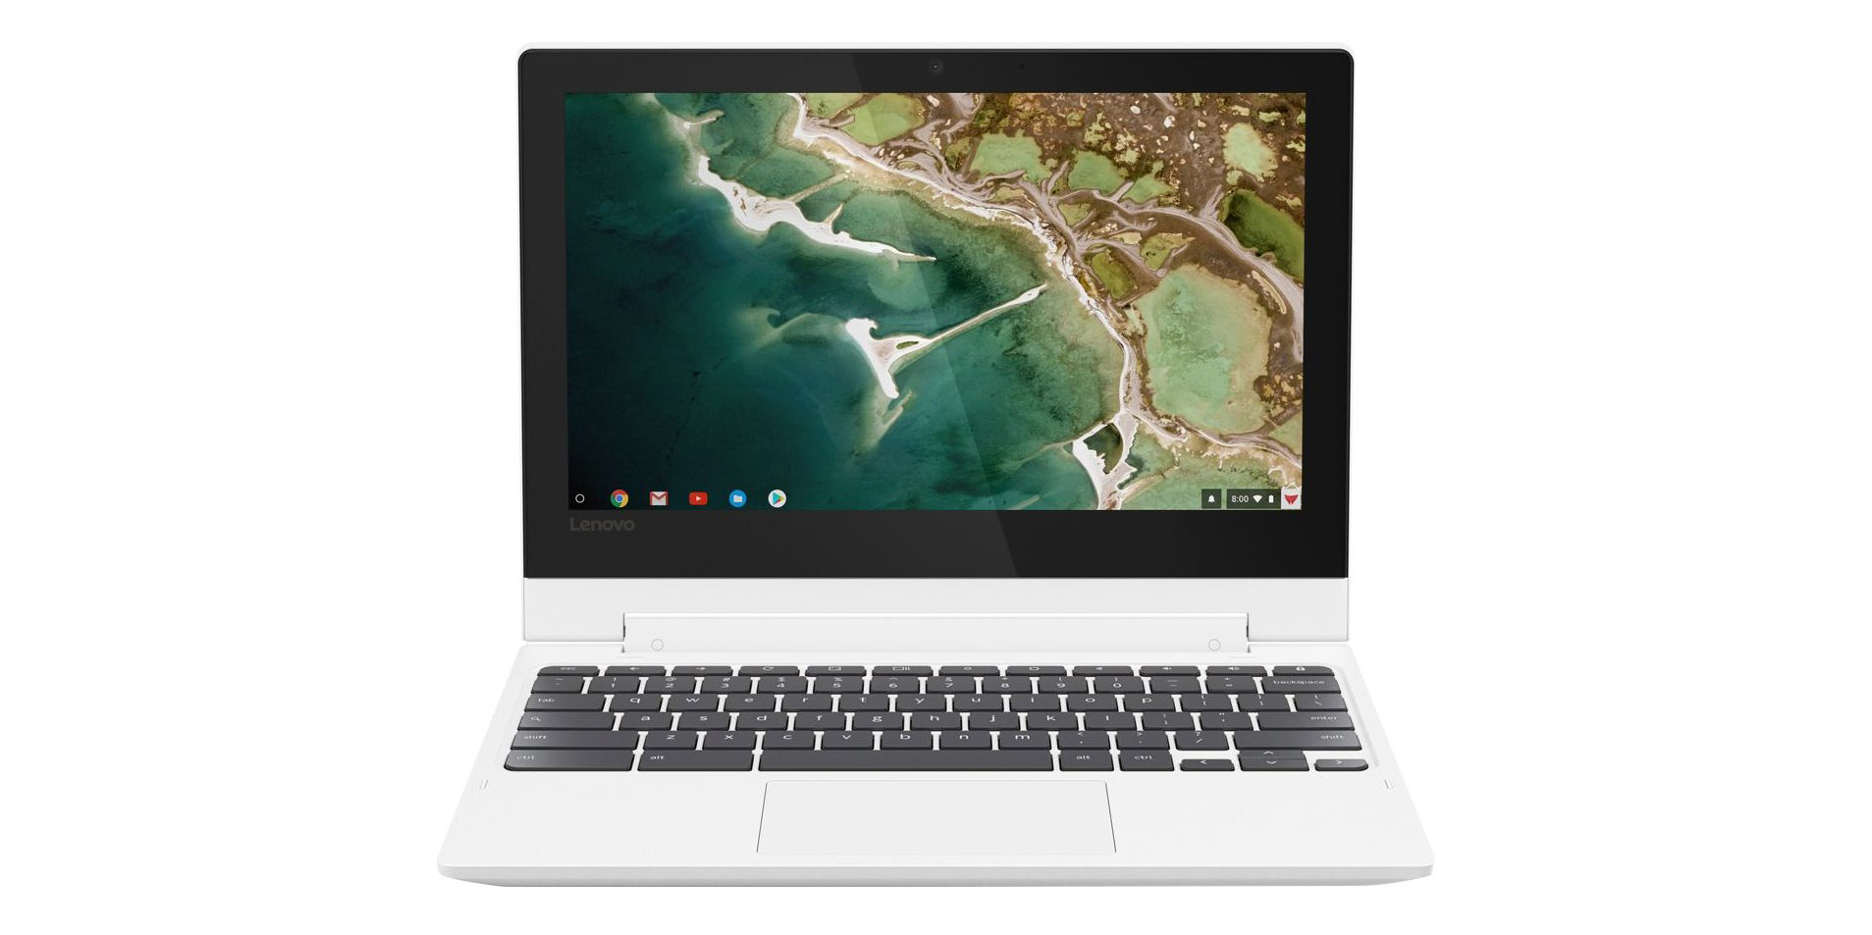 Black Friday Chromebook >> Early Black Friday deal: Lenovo 2-in-1 Convertible 11-inch Chromebook $179 (Reg. $279) - 9to5Toys